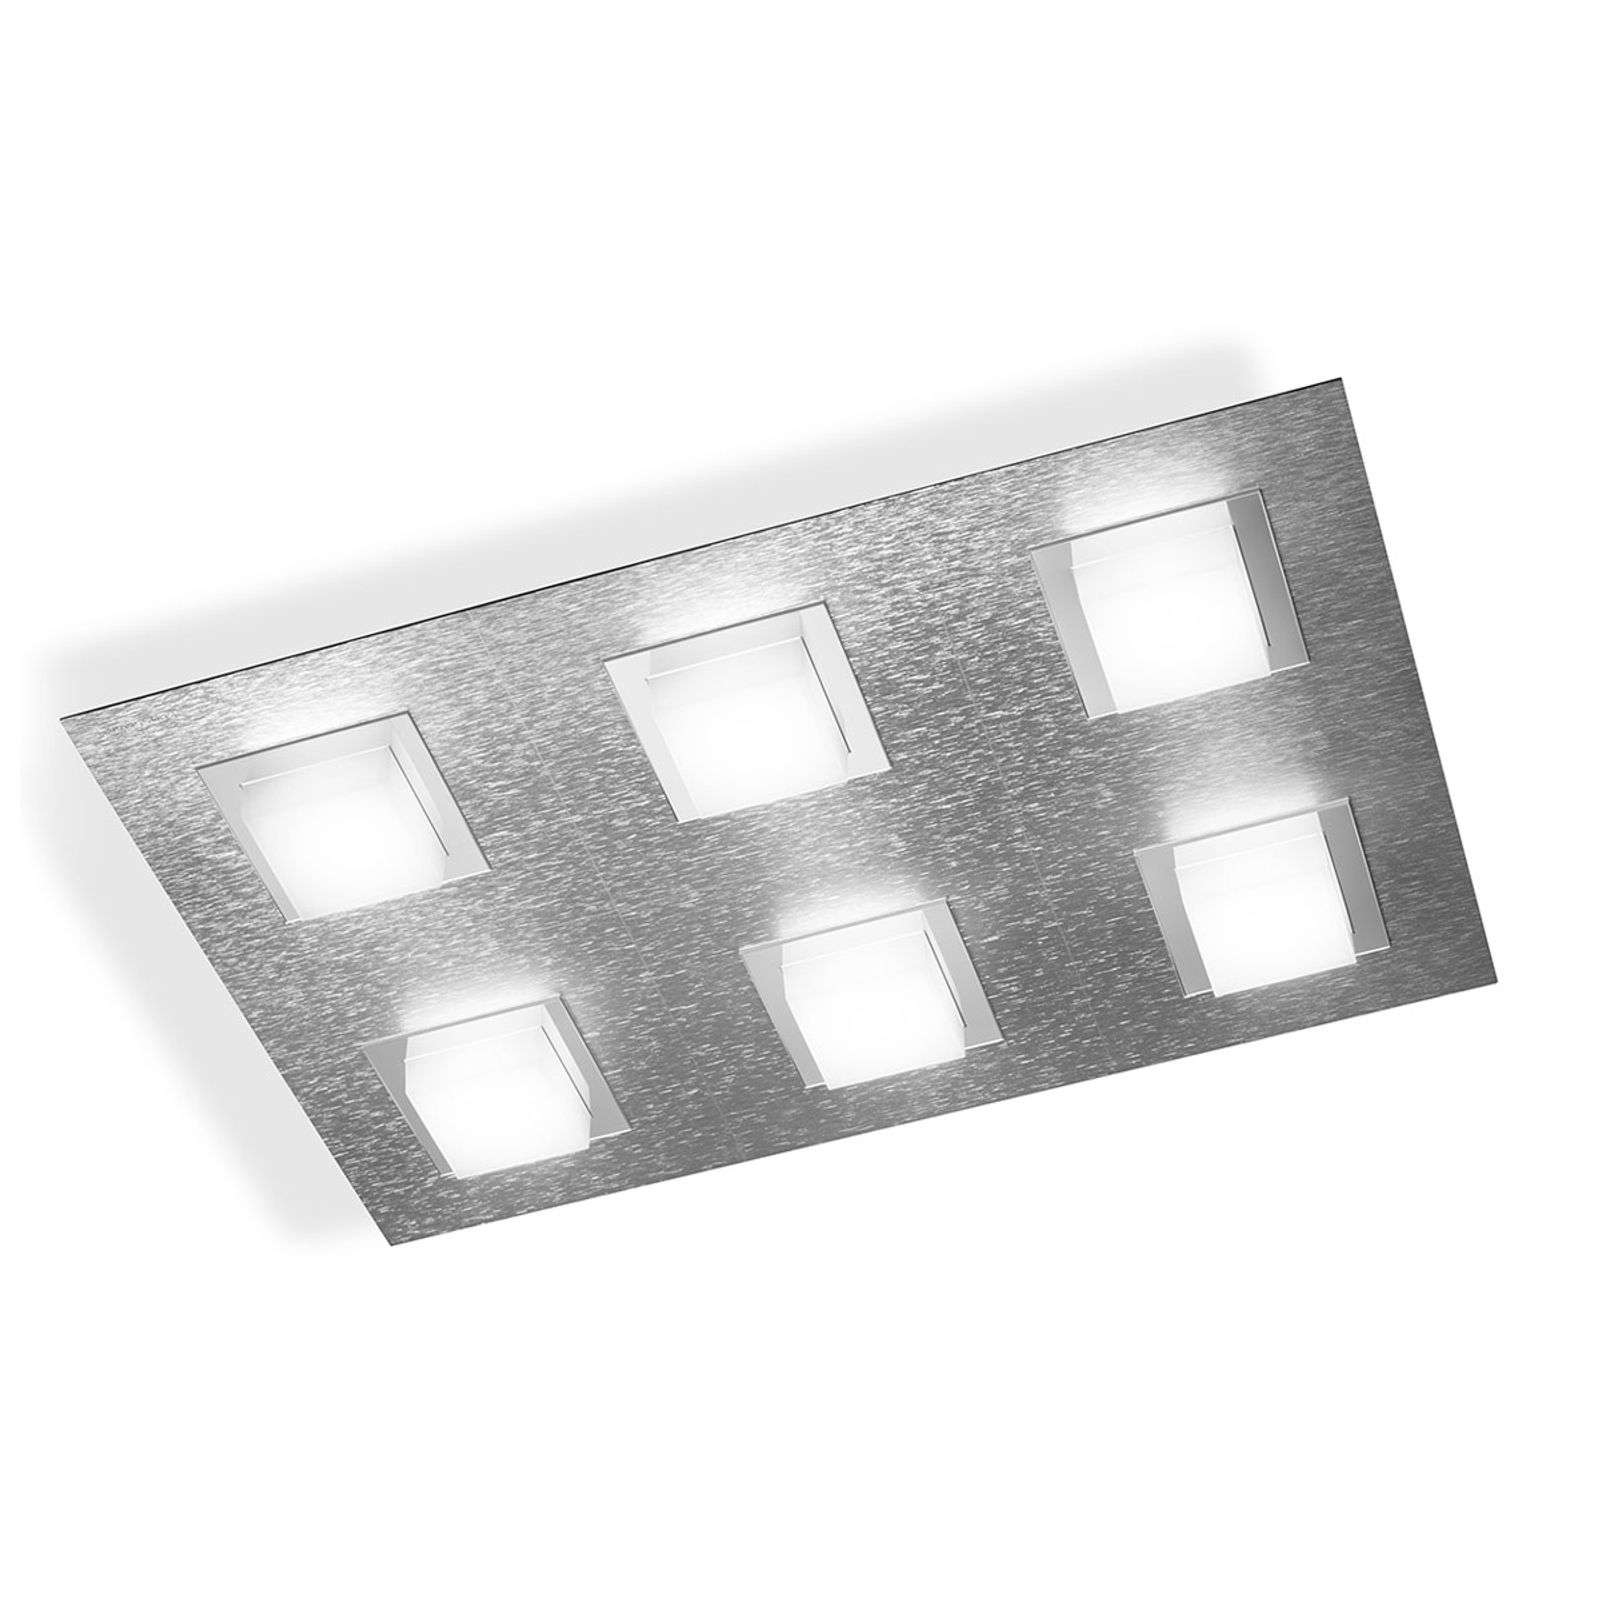 GROSSMANN Basic plafón LED, rectangular aluminio